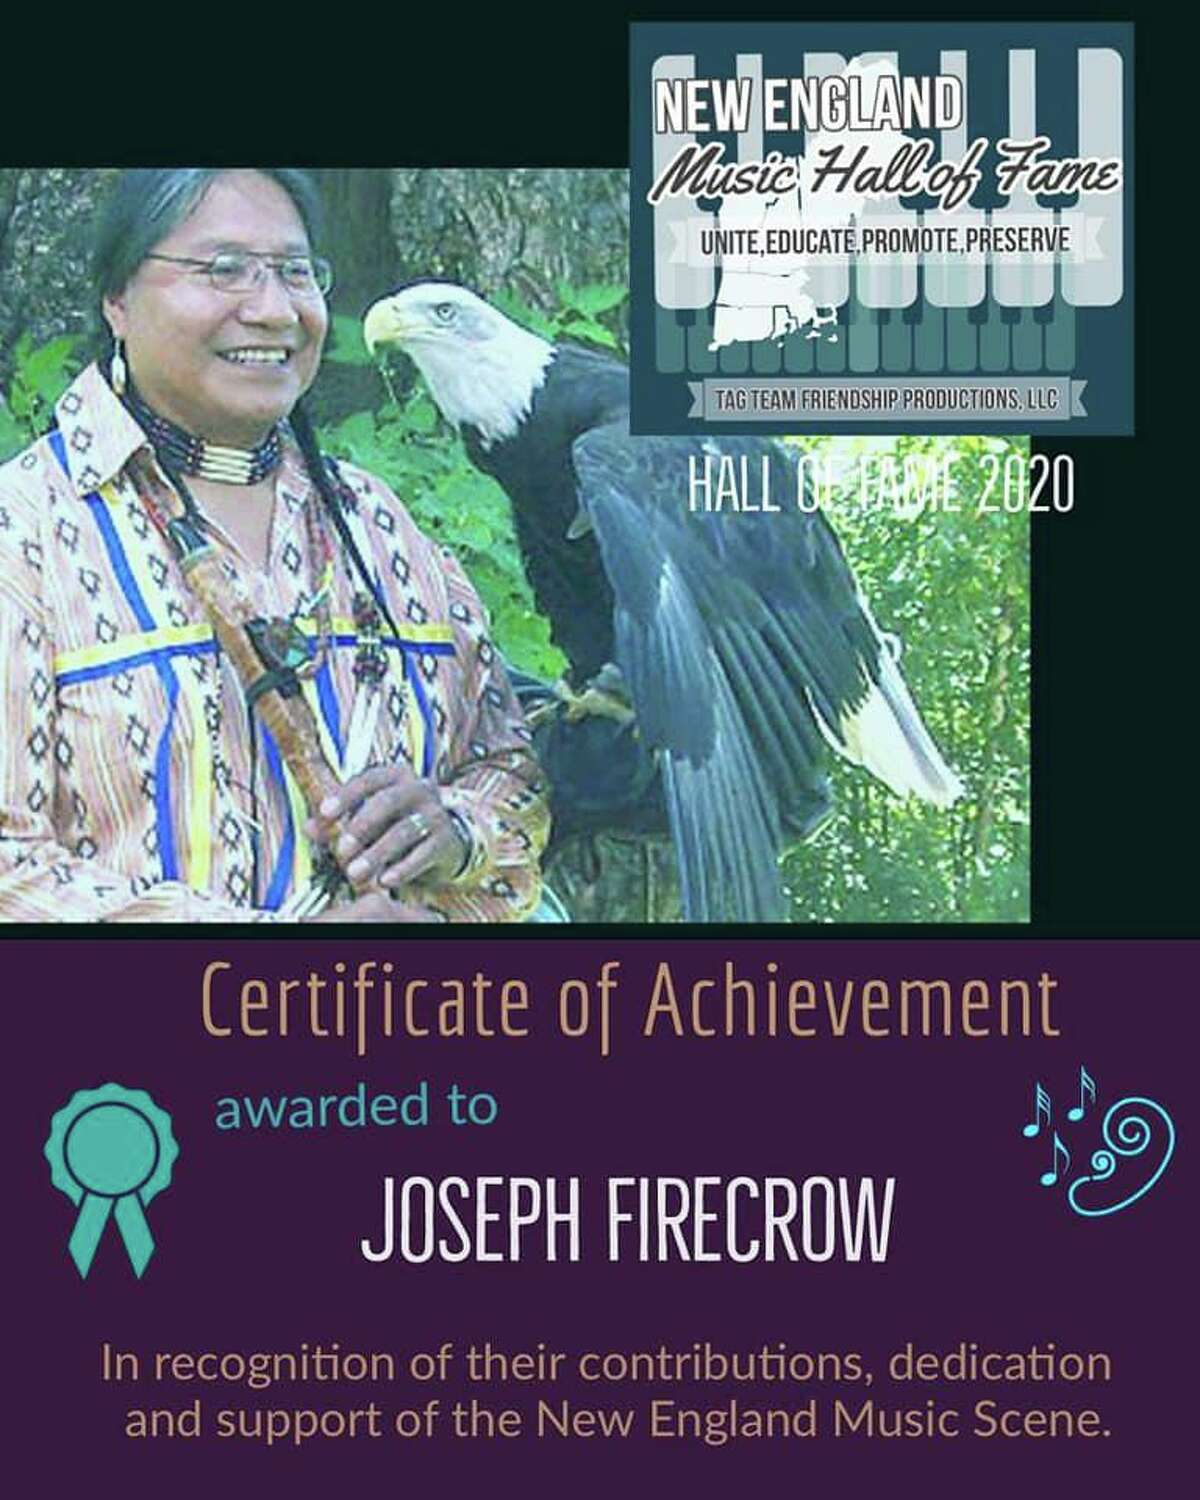 The late musician Joseph Fire Crow of Winstedwill be one of ten inducted into the inaugural class of the New England Music Hall of Fame www.newenglandmusichof.com accepting on his behalf will be his widow and Associate board member of the Hall of Fame Joanne Moore.